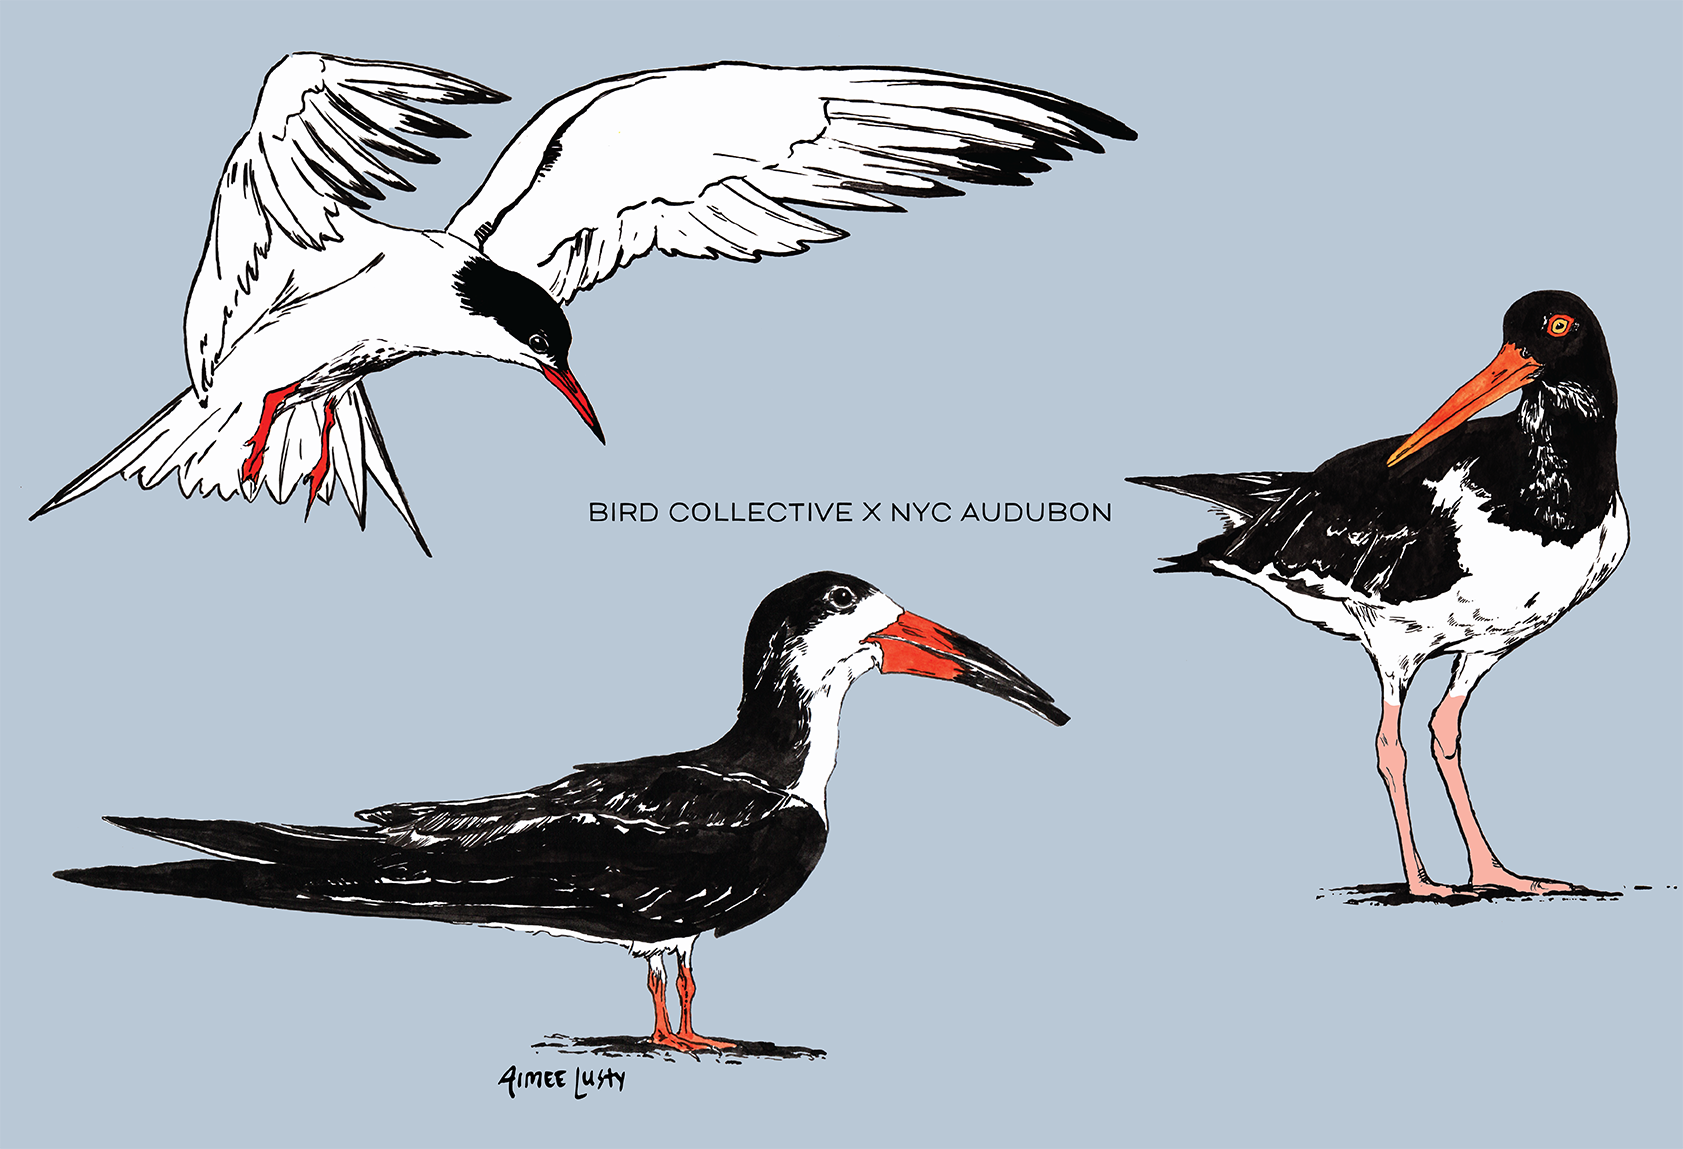 Common Tern, Black Skimmer and American Oystercatcher on Blue Background with text Bird Collective x NYC Audubon